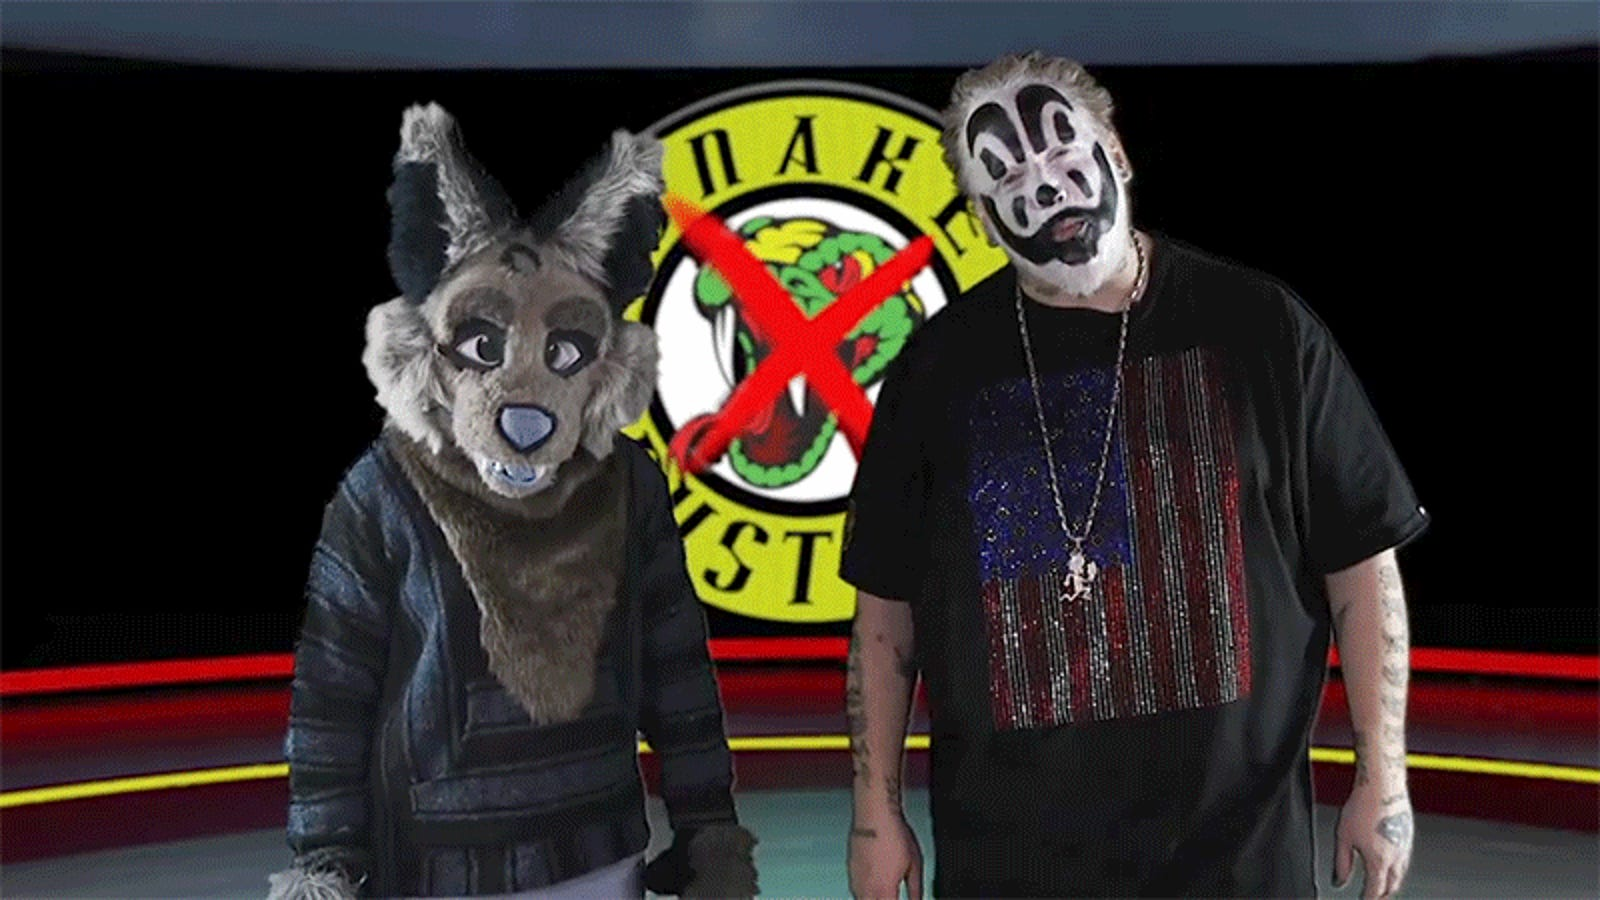 'Furries Are a Lot Like Juggalos': How a Clown Rapper and His Daughter Teamed Up to Fight Snakes